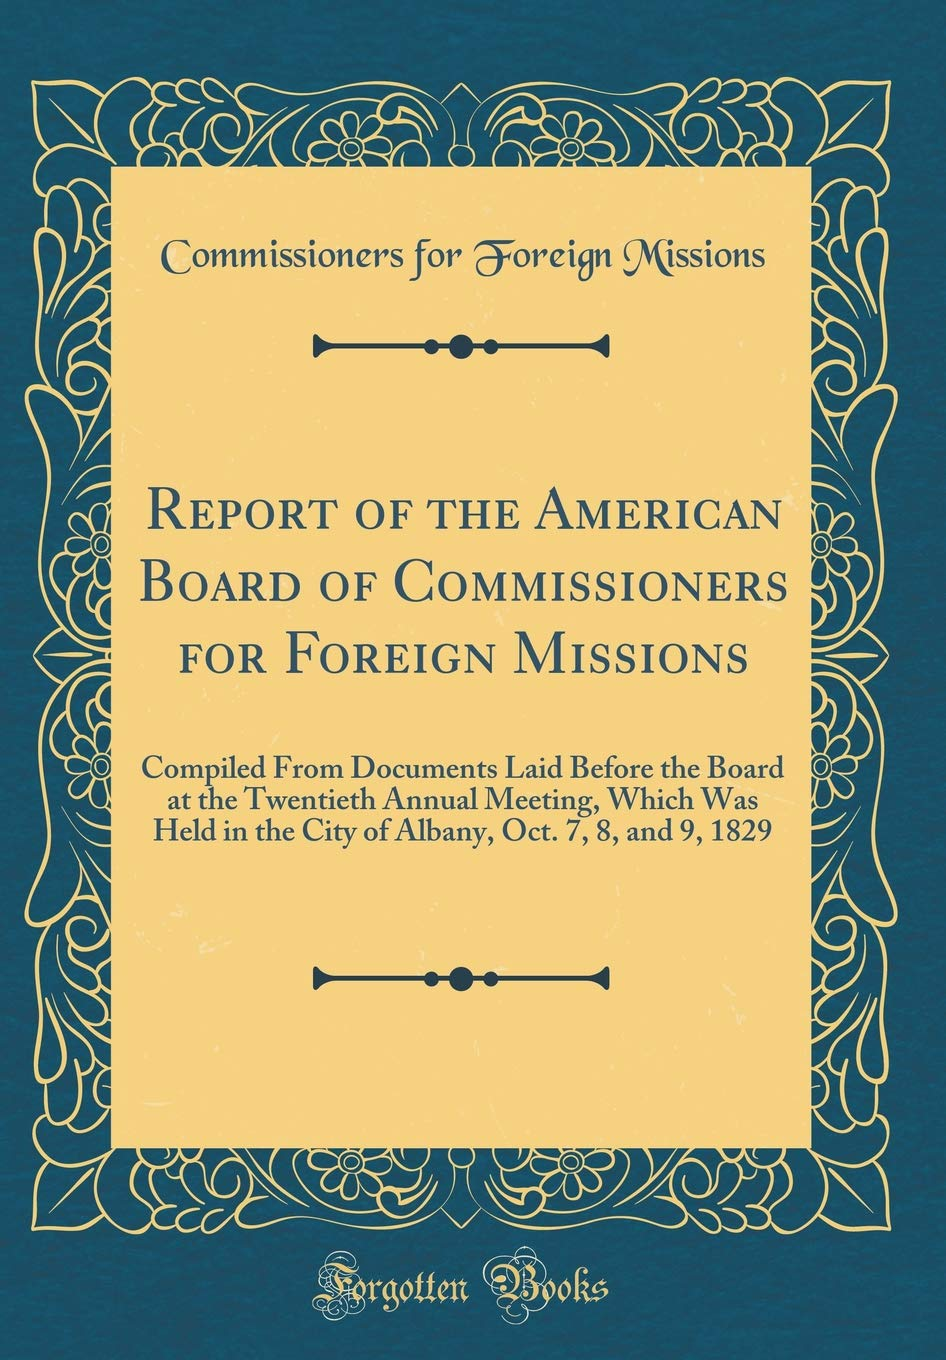 Report of the American Board of Commissioners for Foreign Missions: Compiled from Documents Laid Before the Board at the Twentieth Annual Meeting, ... Oct. 7, 8, and 9, 1829 (Classic Reprint) ebook